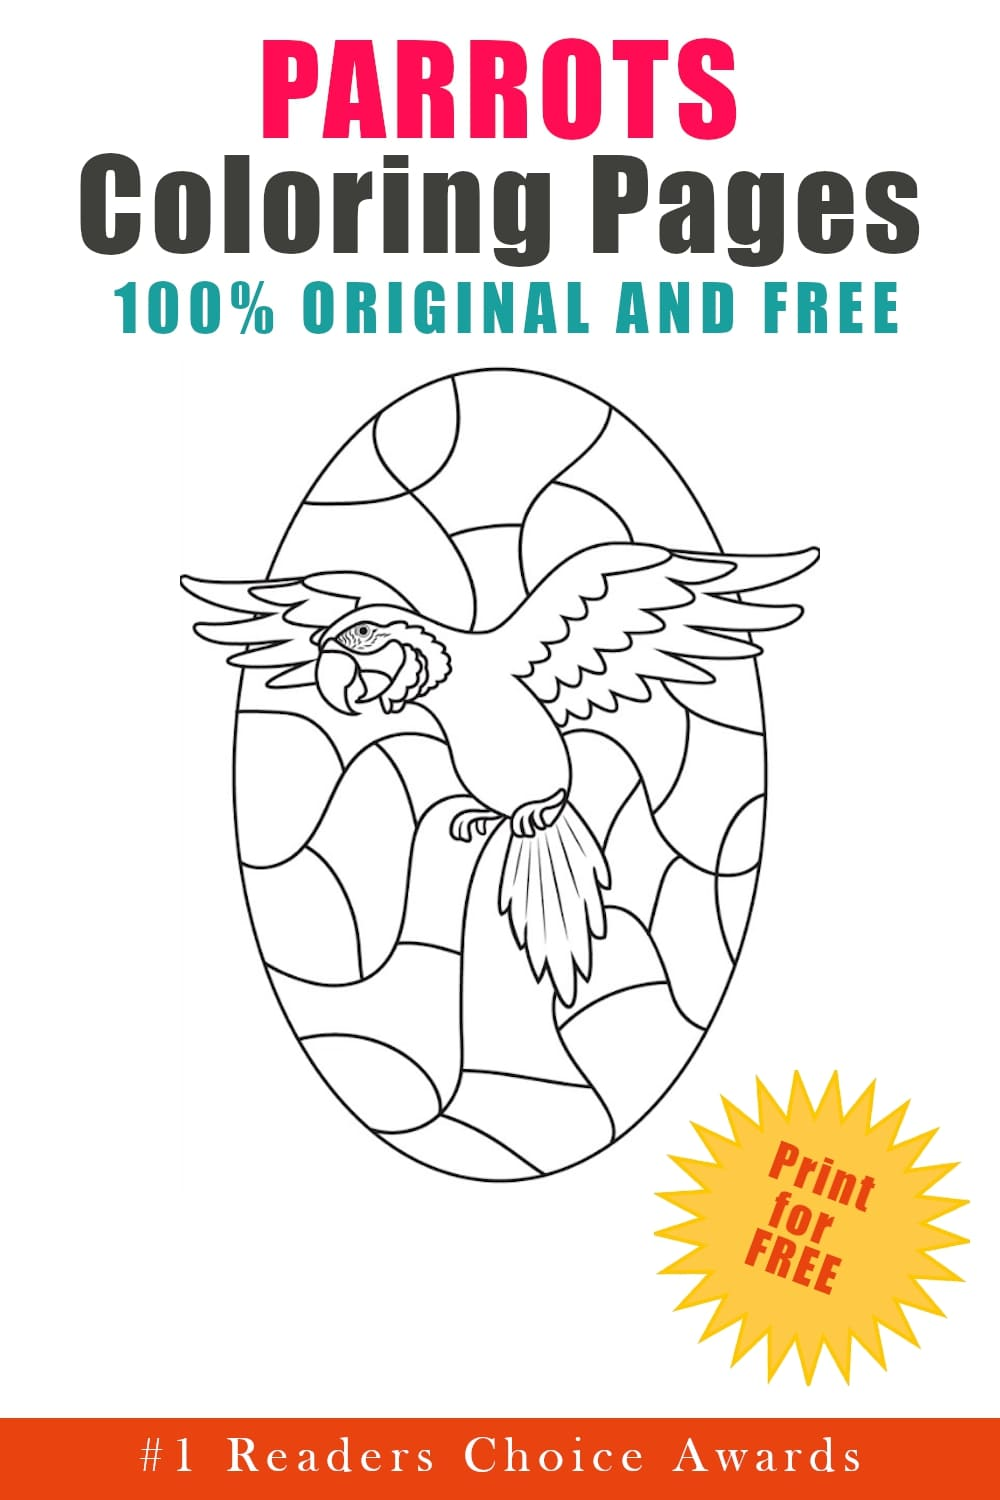 original and free parrots coloring pages